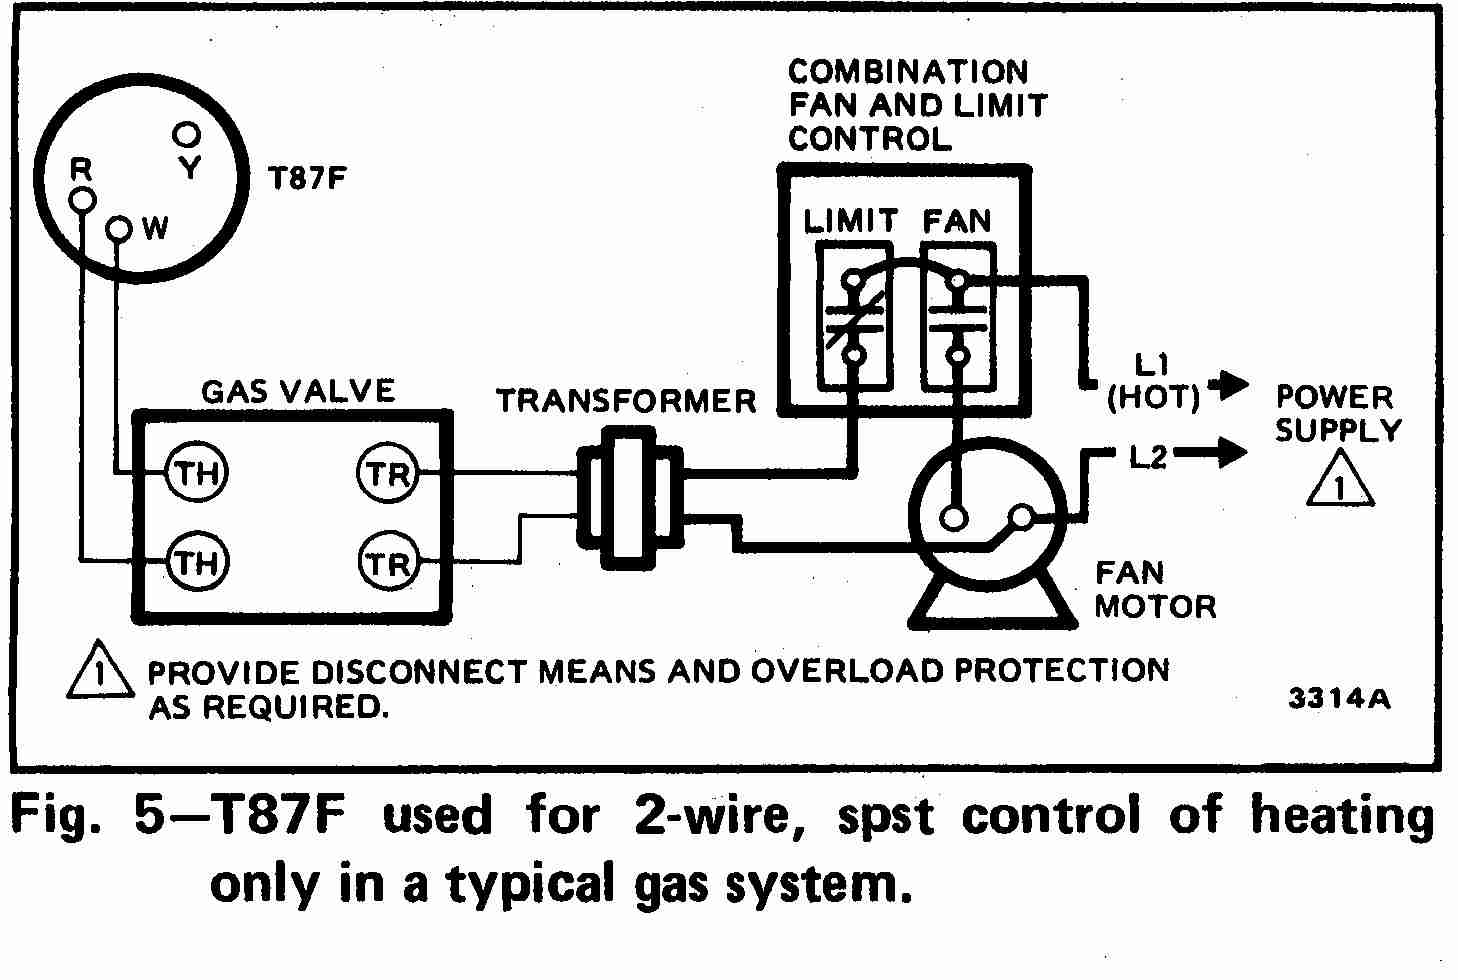 heating only in a typical gas fired heating system details from #666666